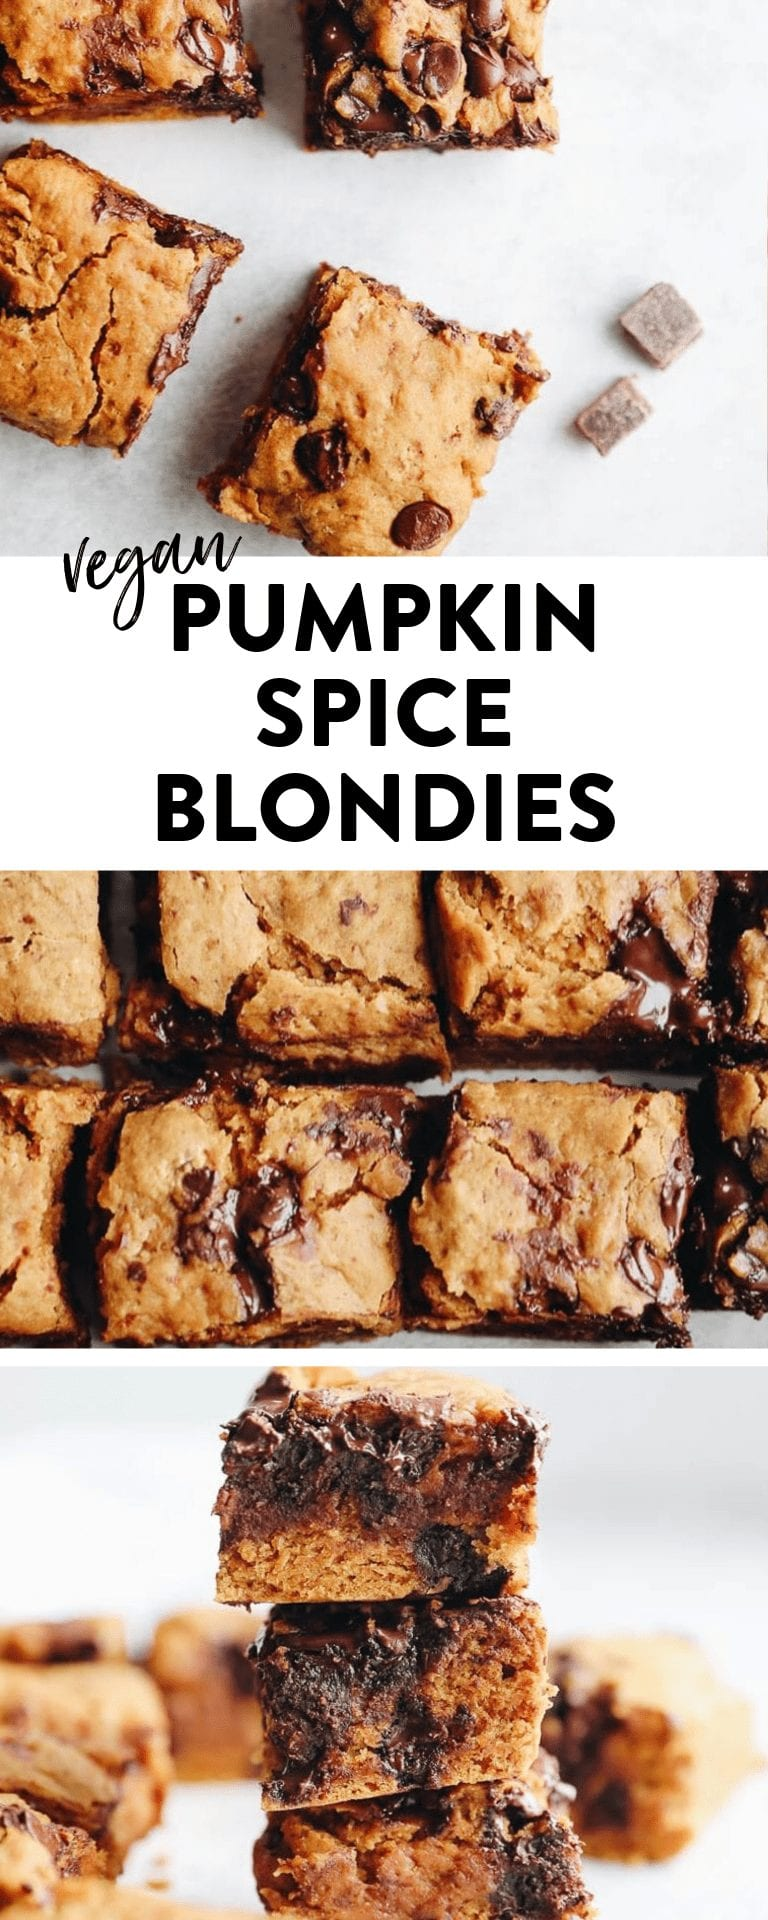 Get the best of fall baking with these pumpkin spice blondies! They're #healthy and #vegan and ready in under 30 minutes!